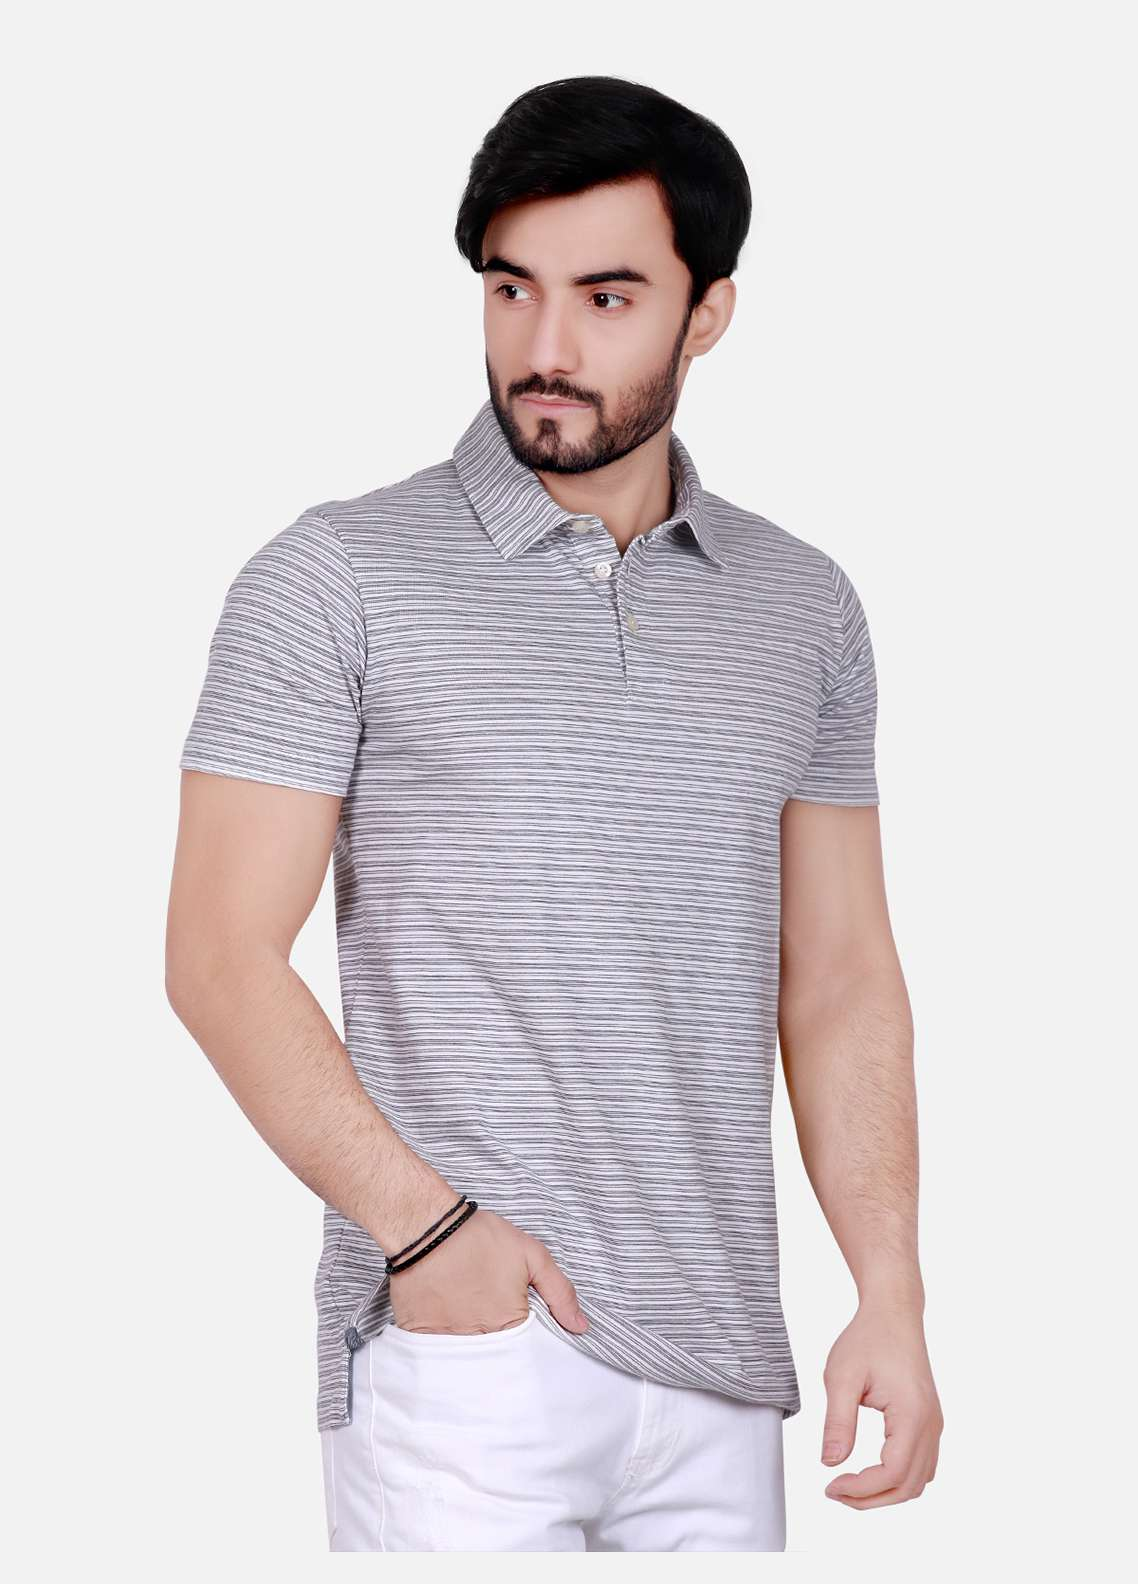 Furor Cotton Polo Men T-Shirts - Grey FRM18PS 014